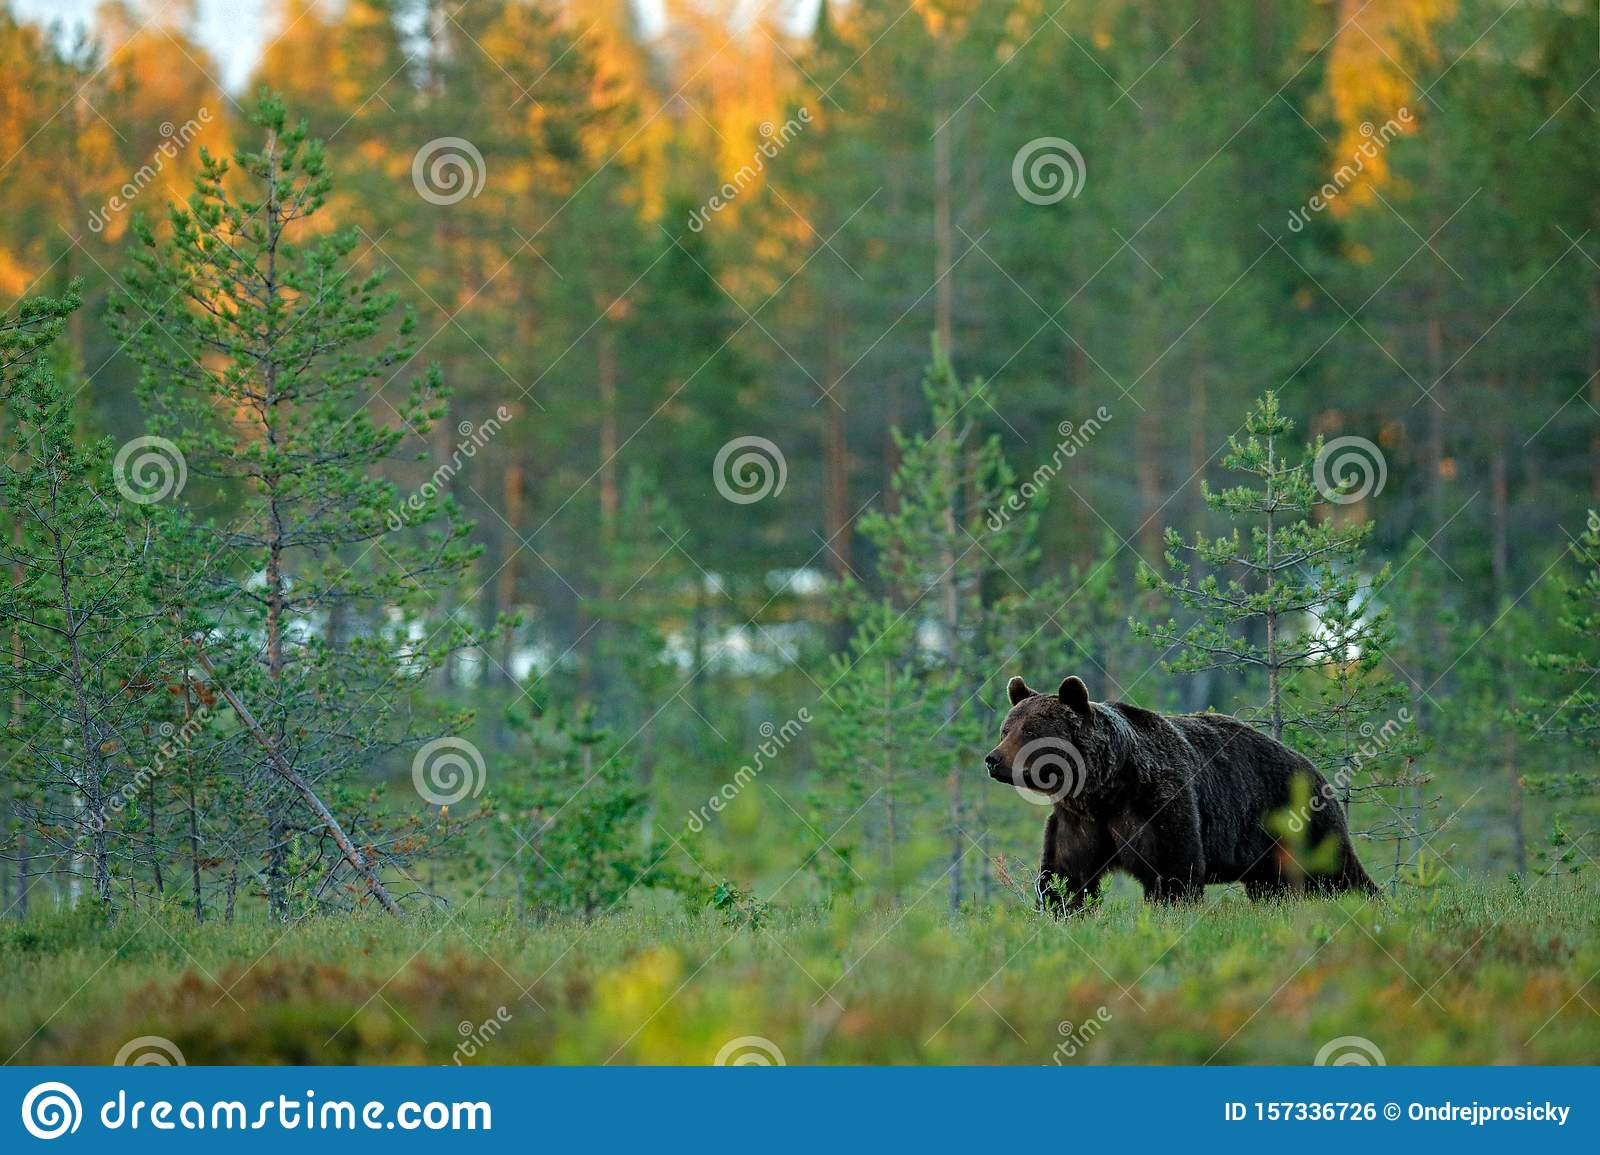 Evening light in taiga with bear. Dangerous animal in nature forest and meadow habitat. Wildlife scene from Finland near Russian